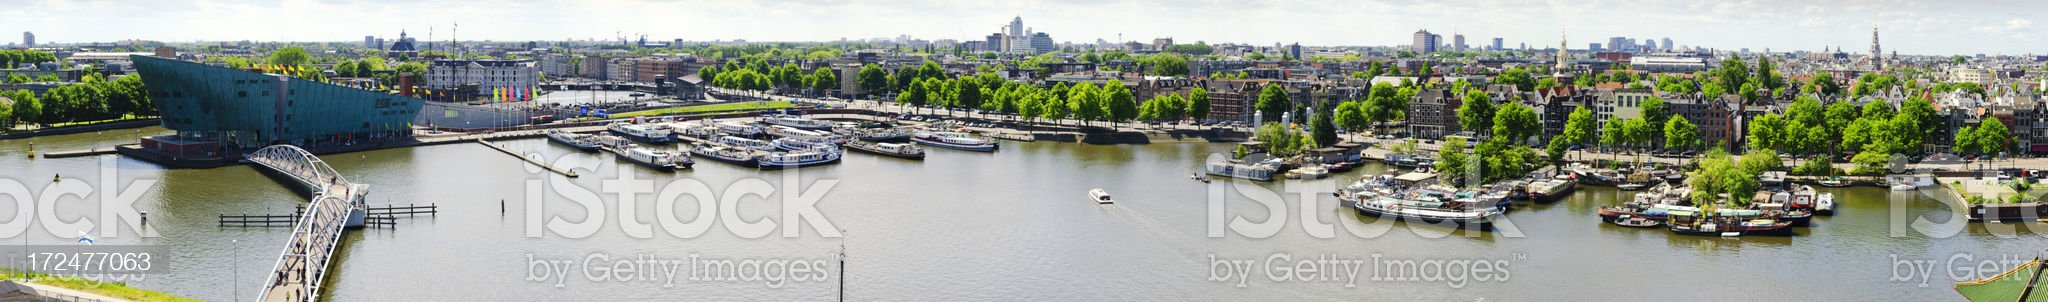 Amsterdam aerial view panorama royalty-free stock photo